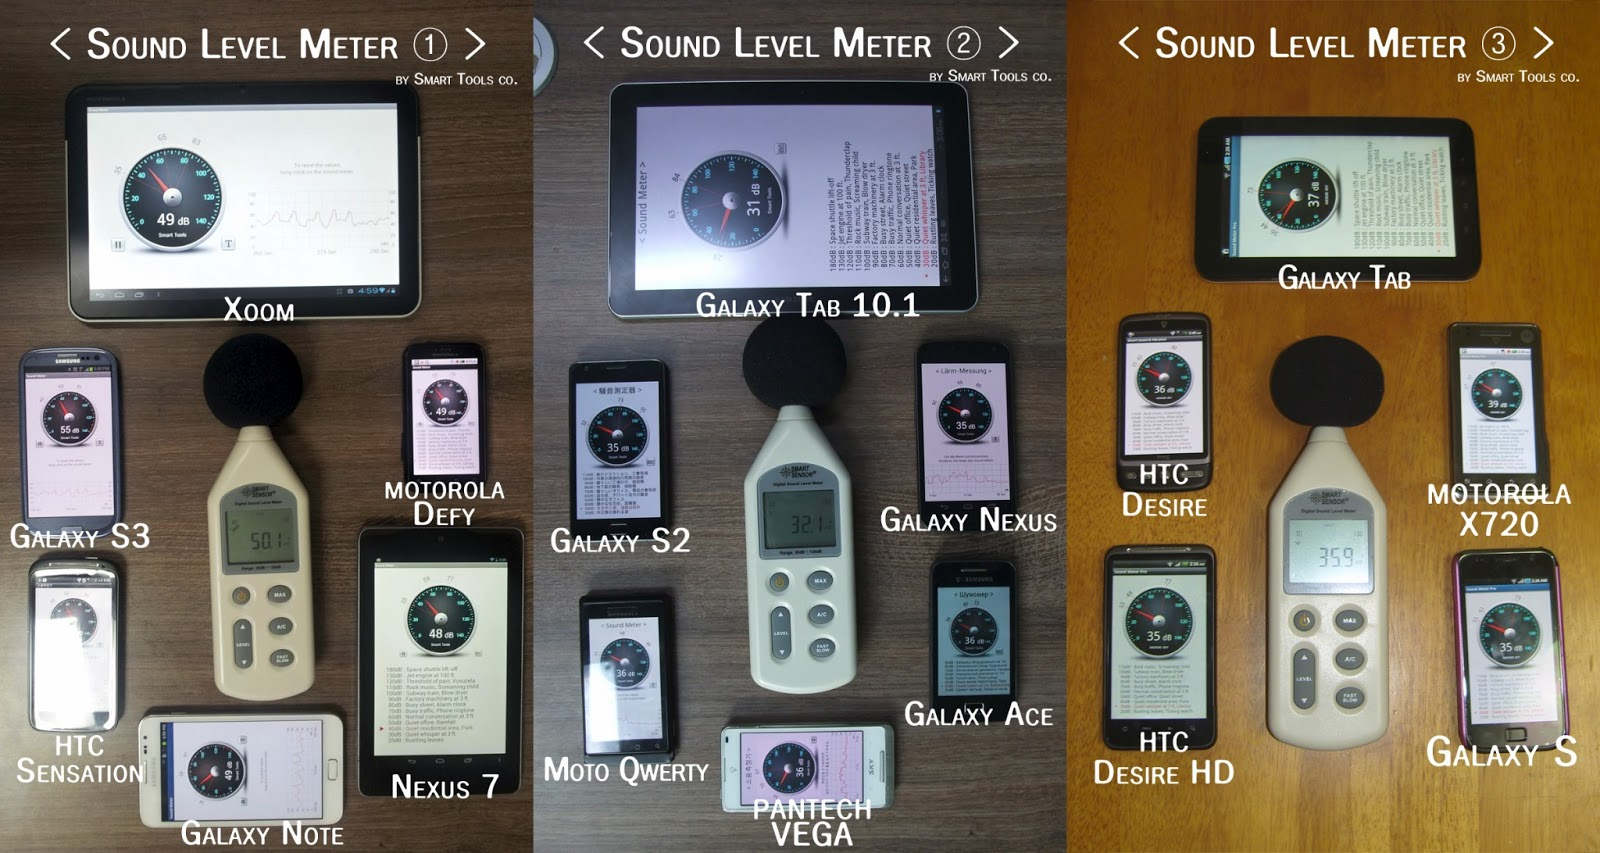 Android boy's Lab: Sound Meter Pro (ver 2 4) manual